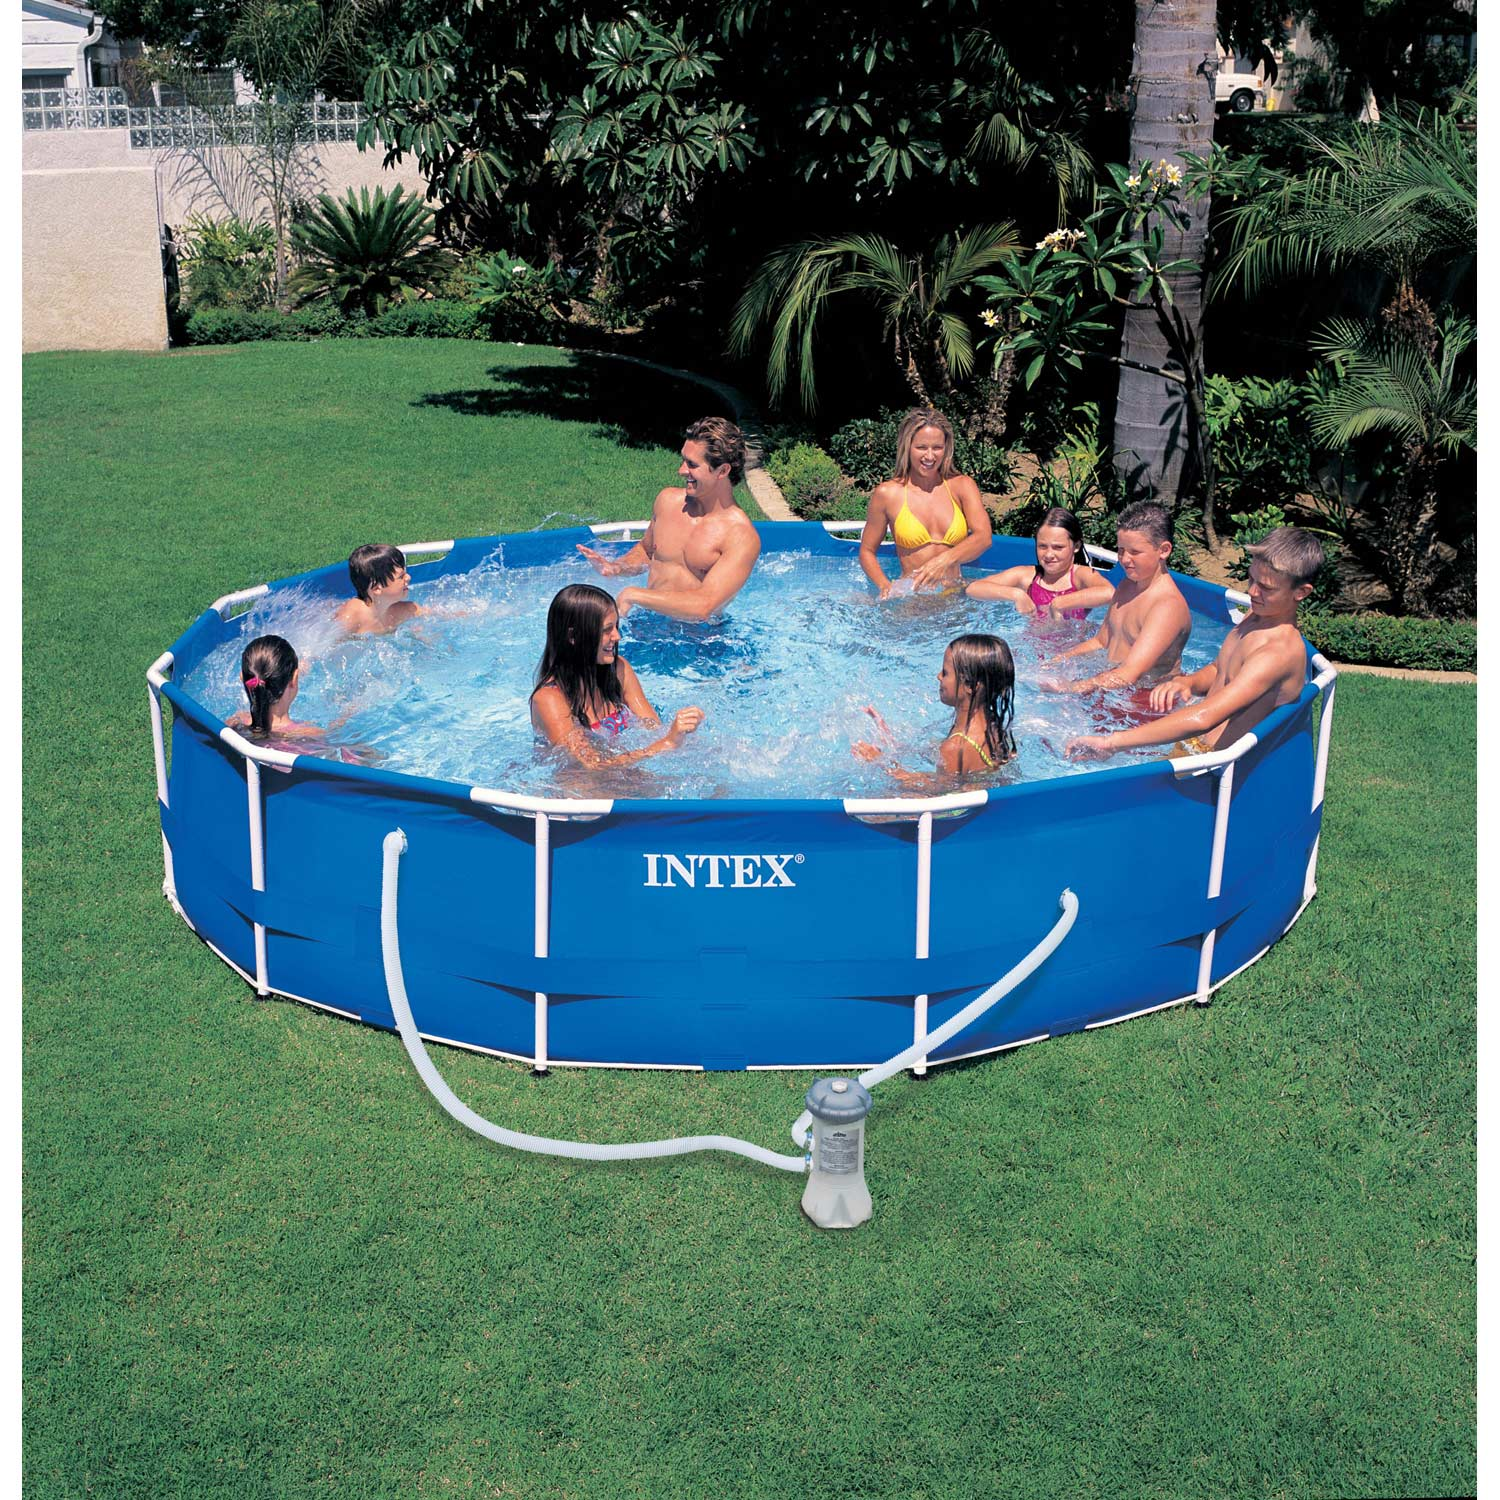 Piscine hors sol autoportante tubulaire metal frame intex for Prix piscine 6 x 3